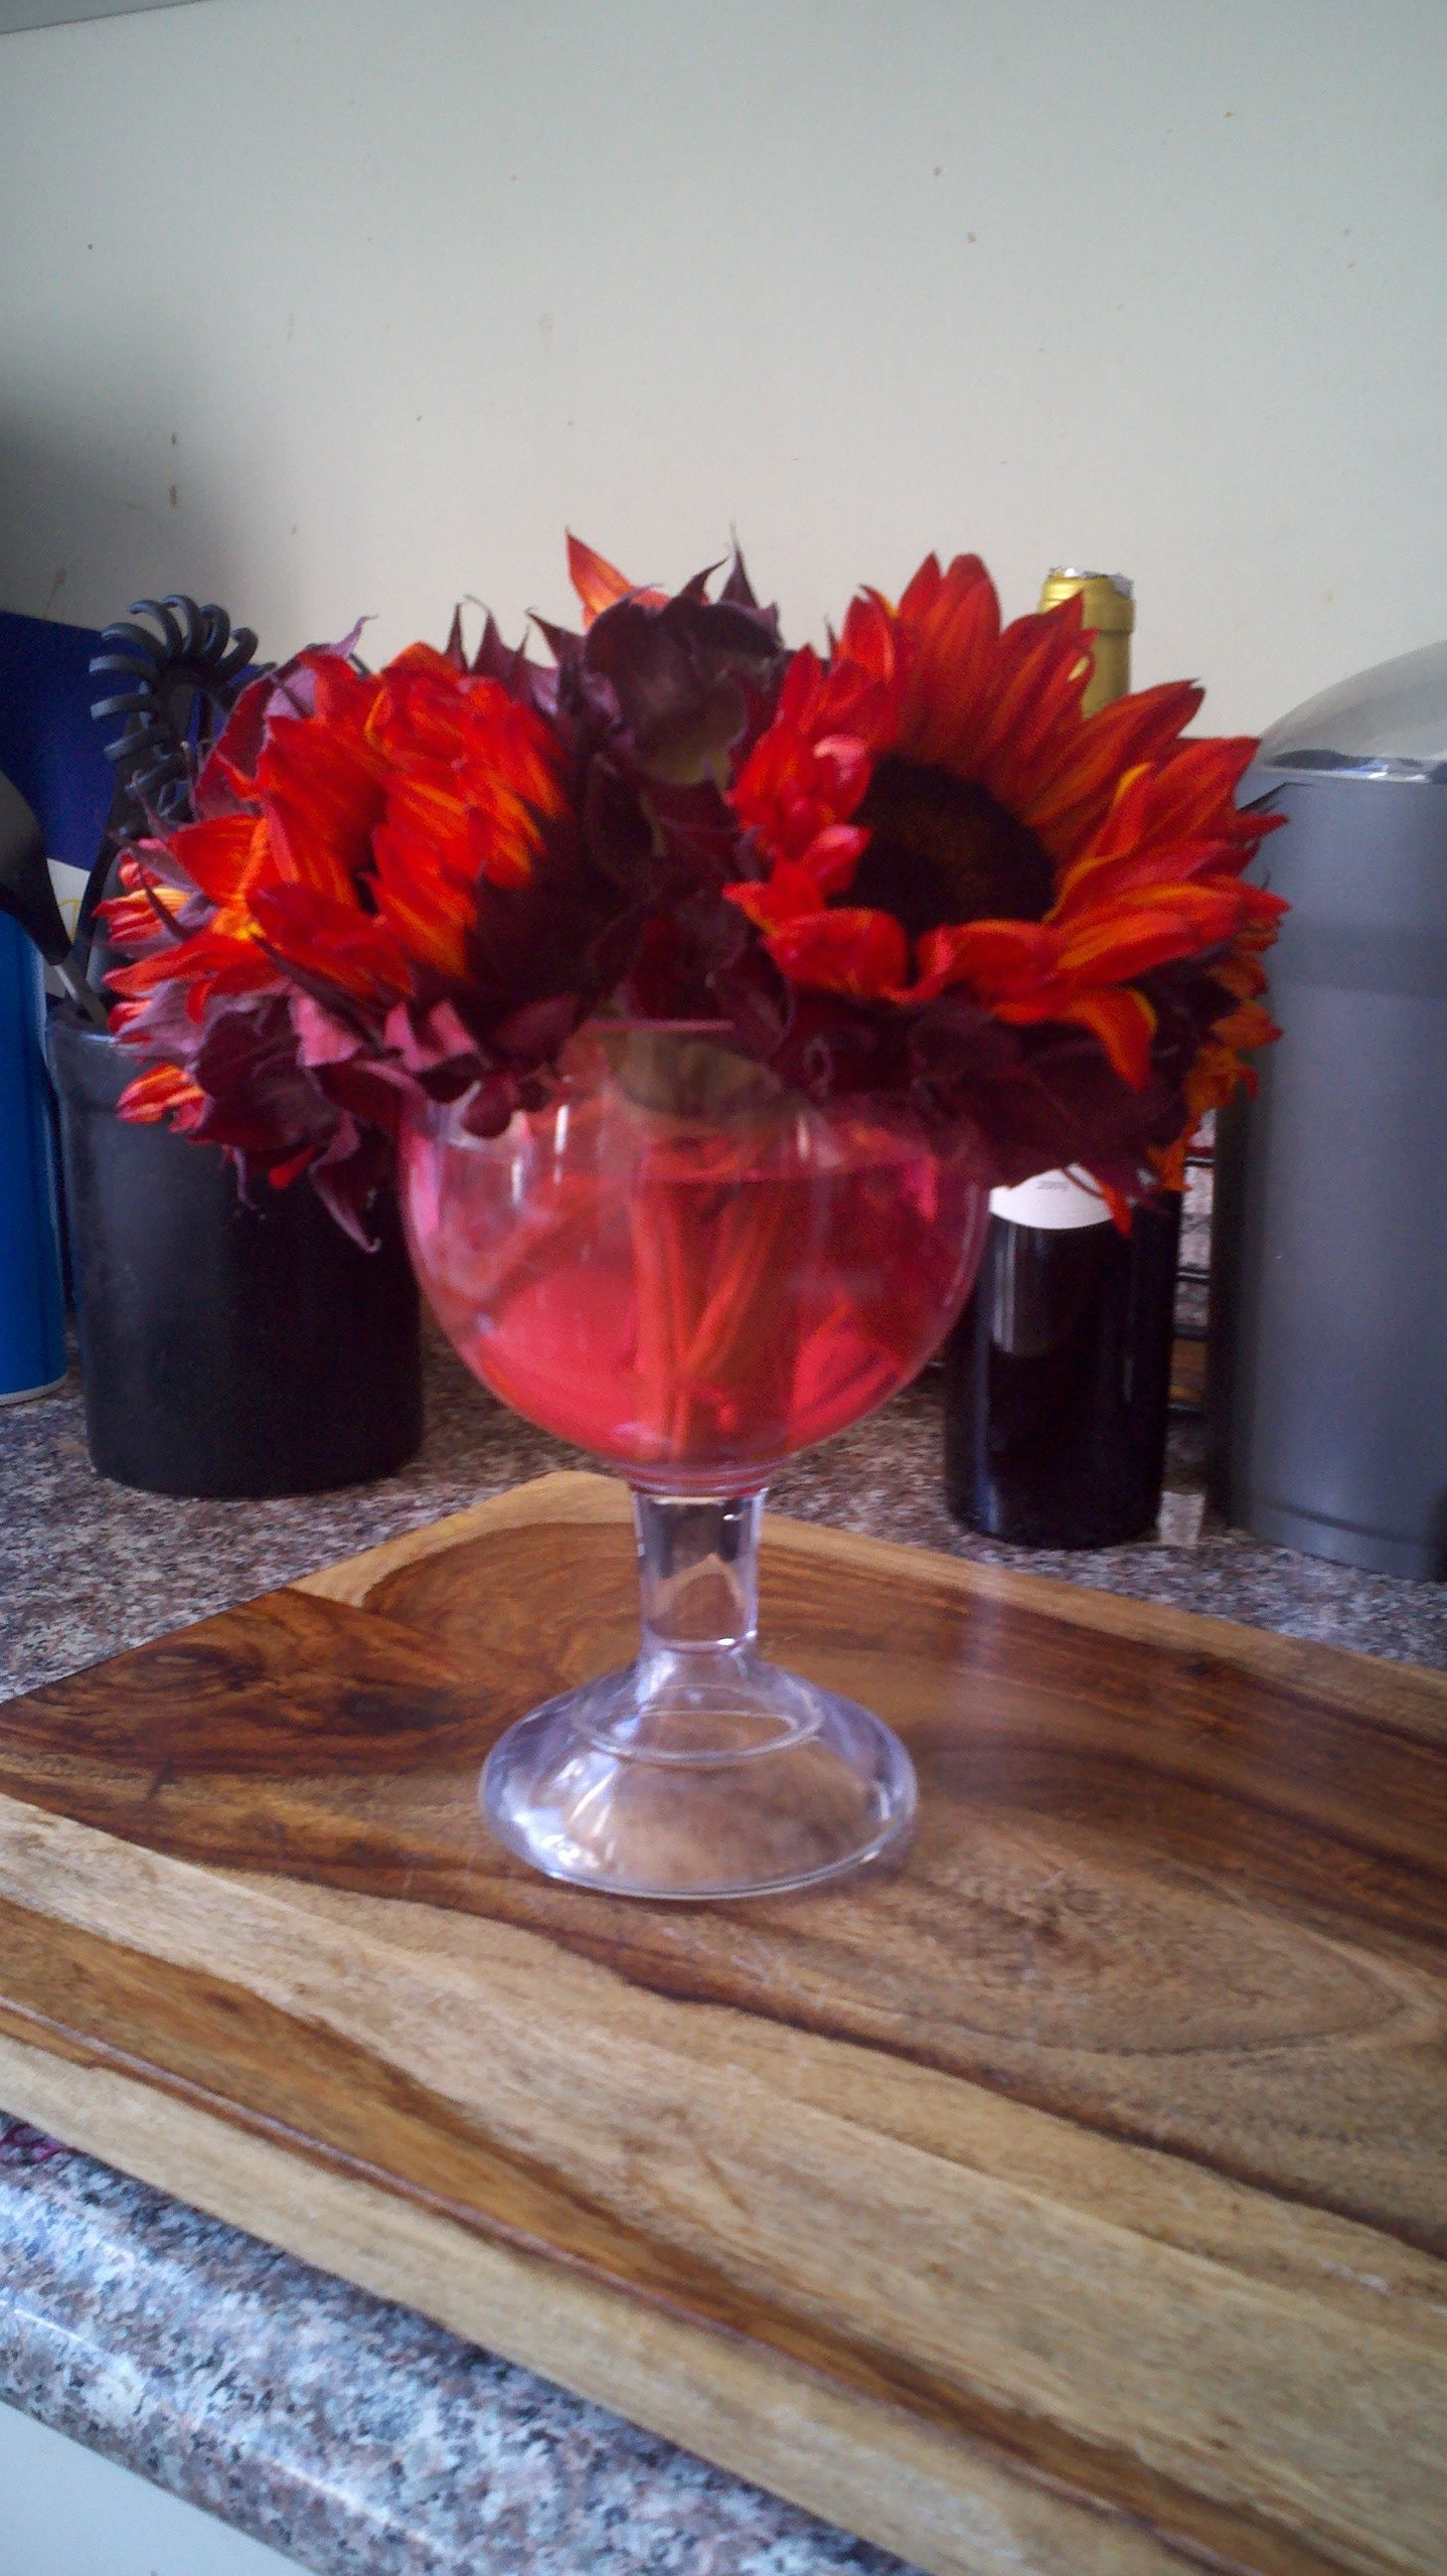 This Was Put Together Very Cheap And Easily Plus The Dye In The Stems Of The Sunflowers Turn The Water Red Which Looks Gre Wedding Celebrity Weddings Sunflower